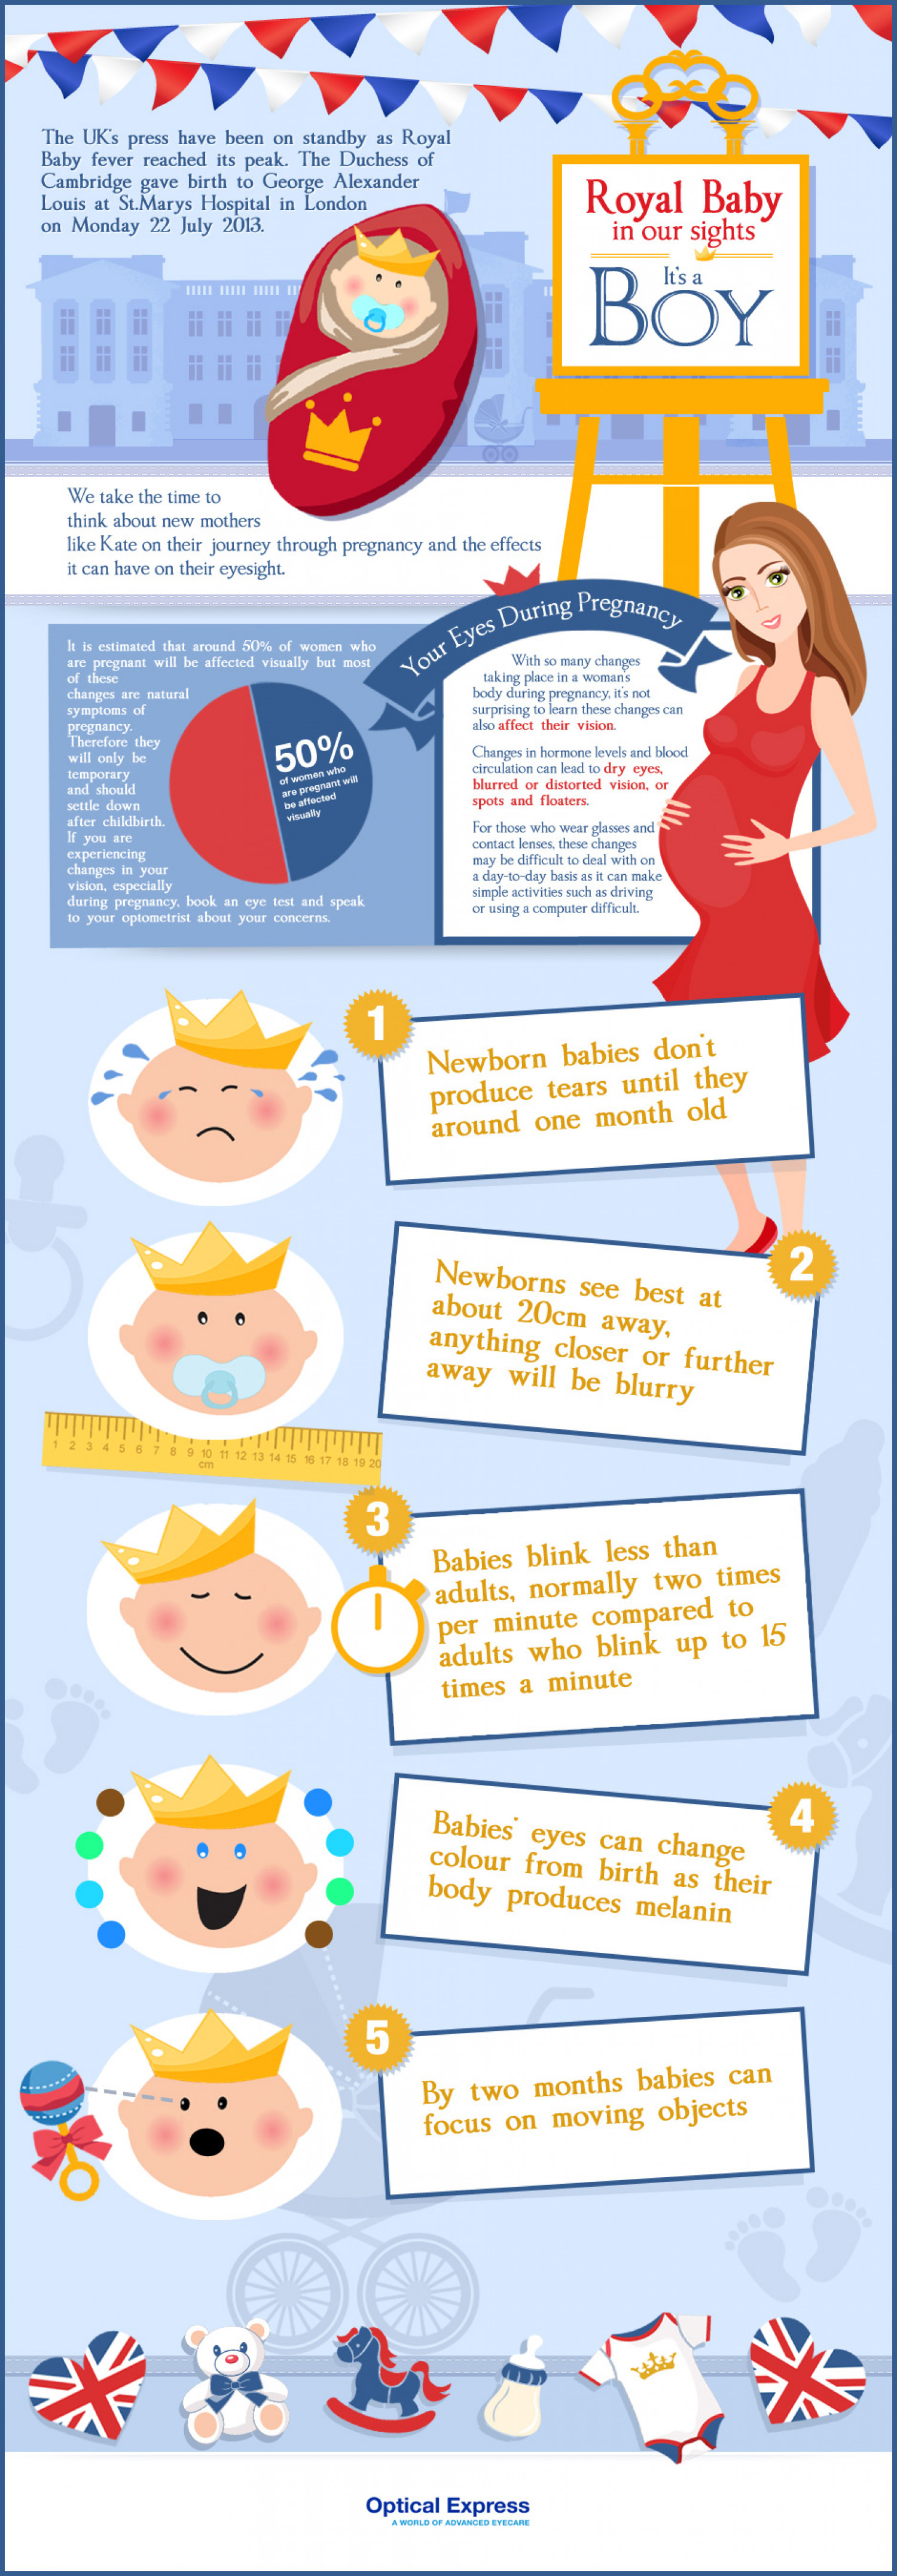 Royal Baby In Our Sights Infographic